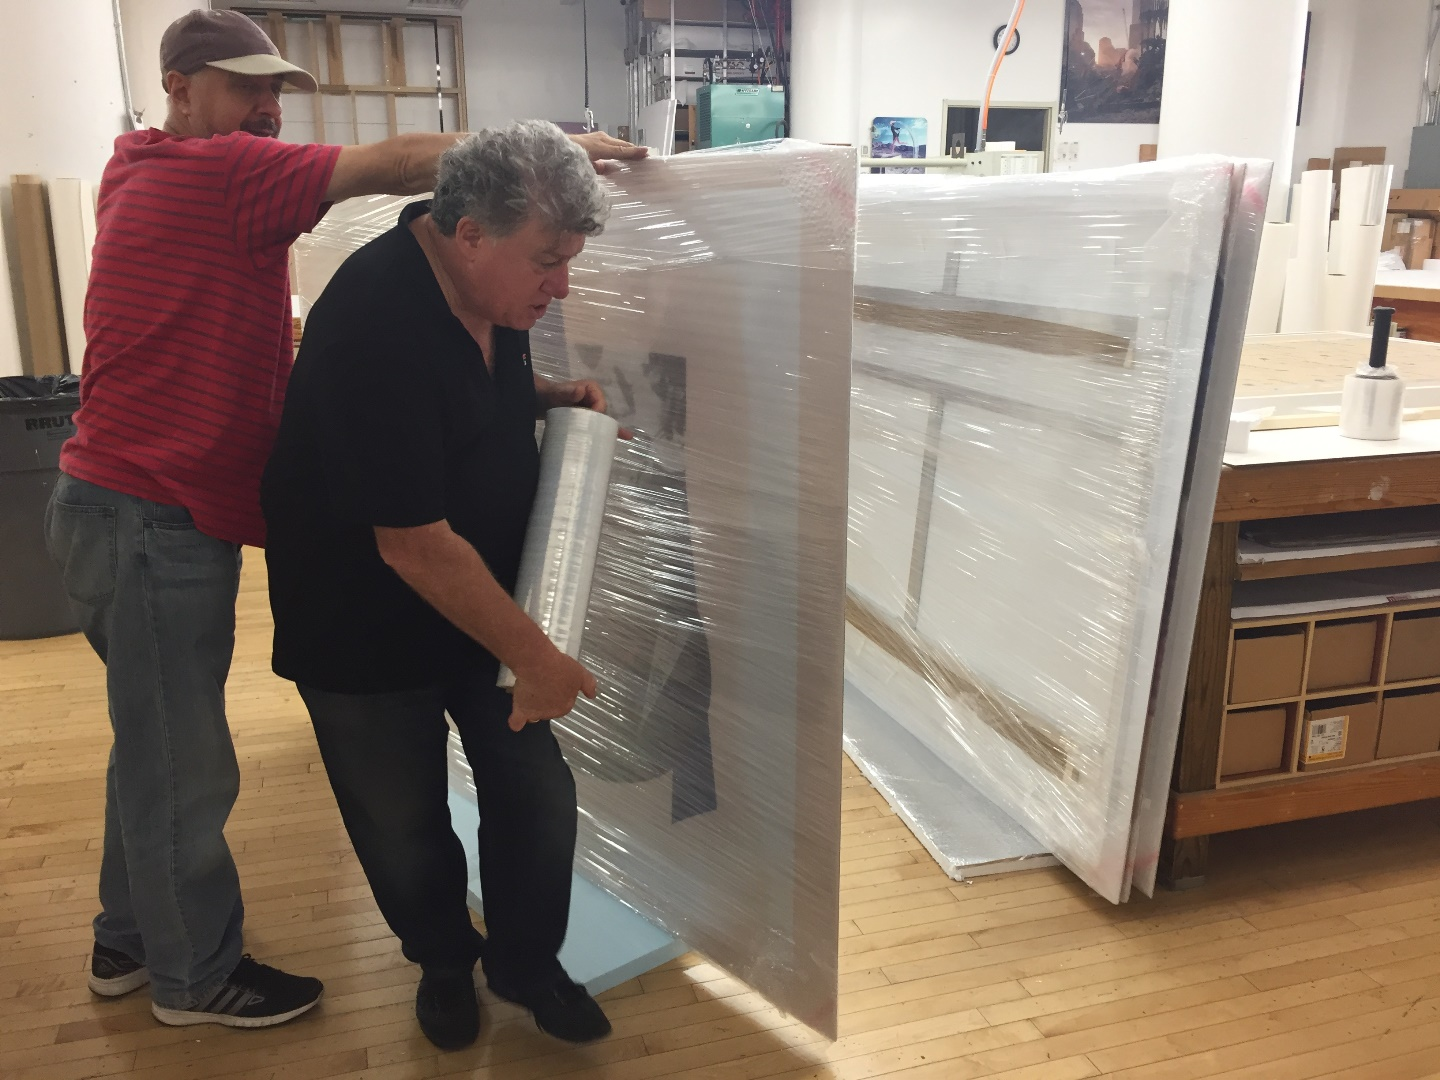 How to ship art prints